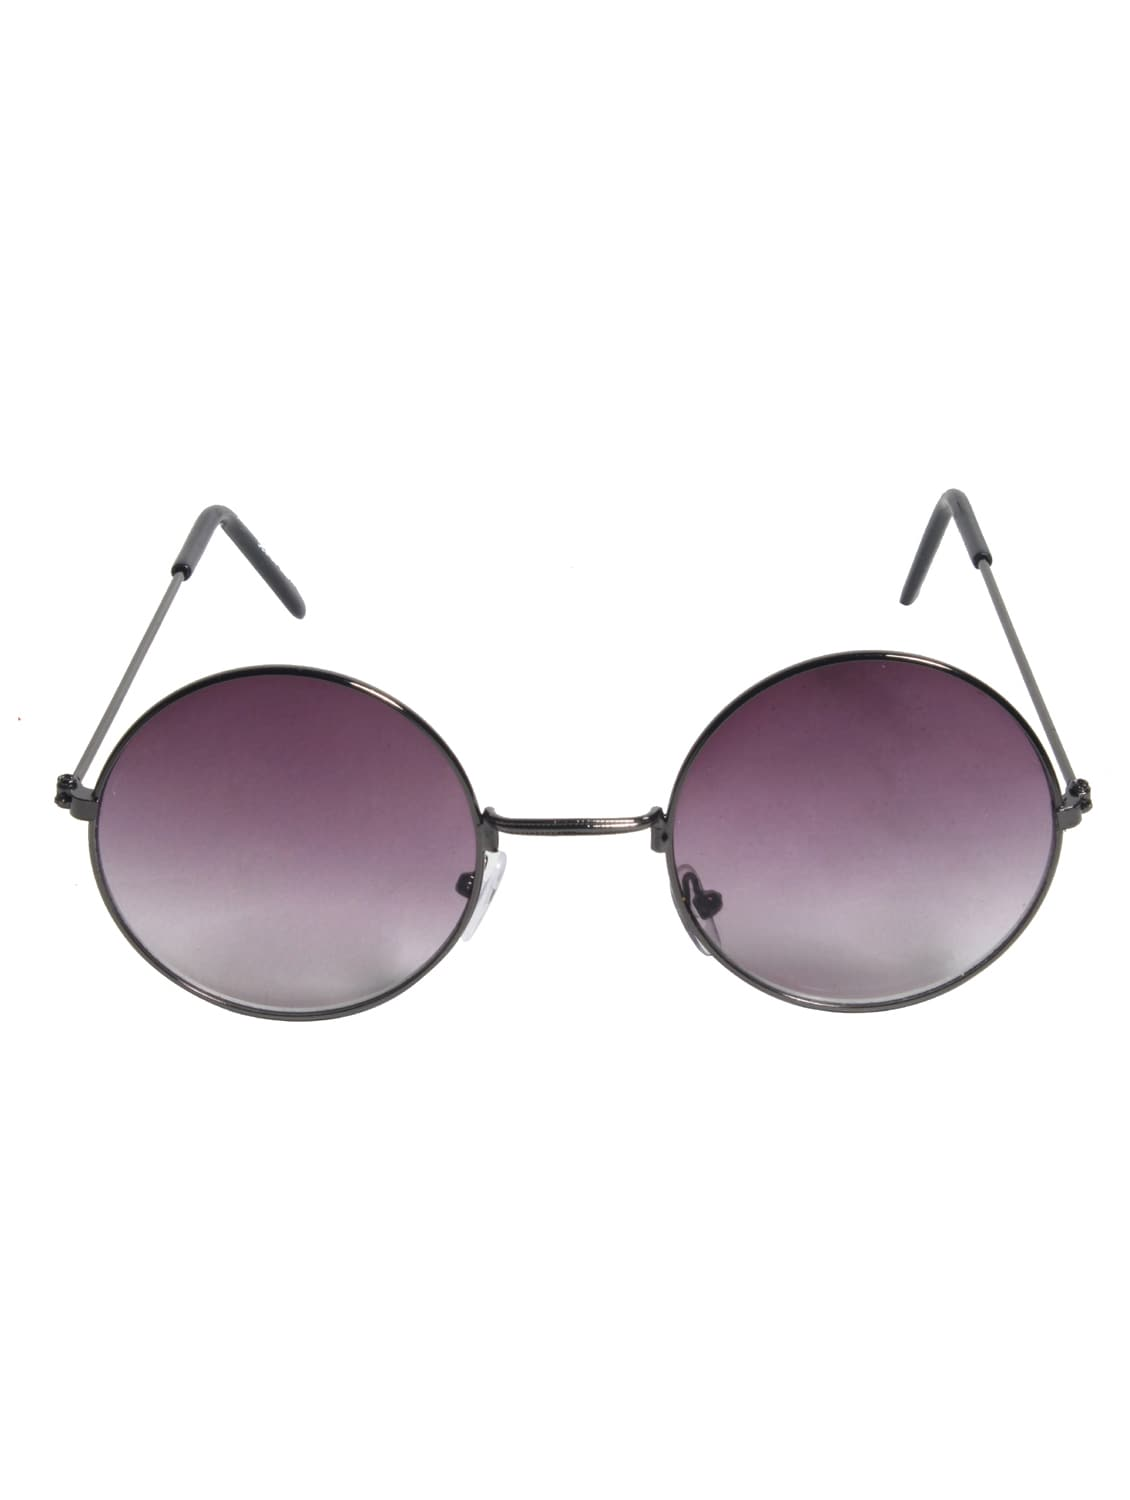 bc0c84378ef Buy Purple Polycarbonate Men Sunglass by The Zoya Life - Online shopping  for Men Sunglasses in India